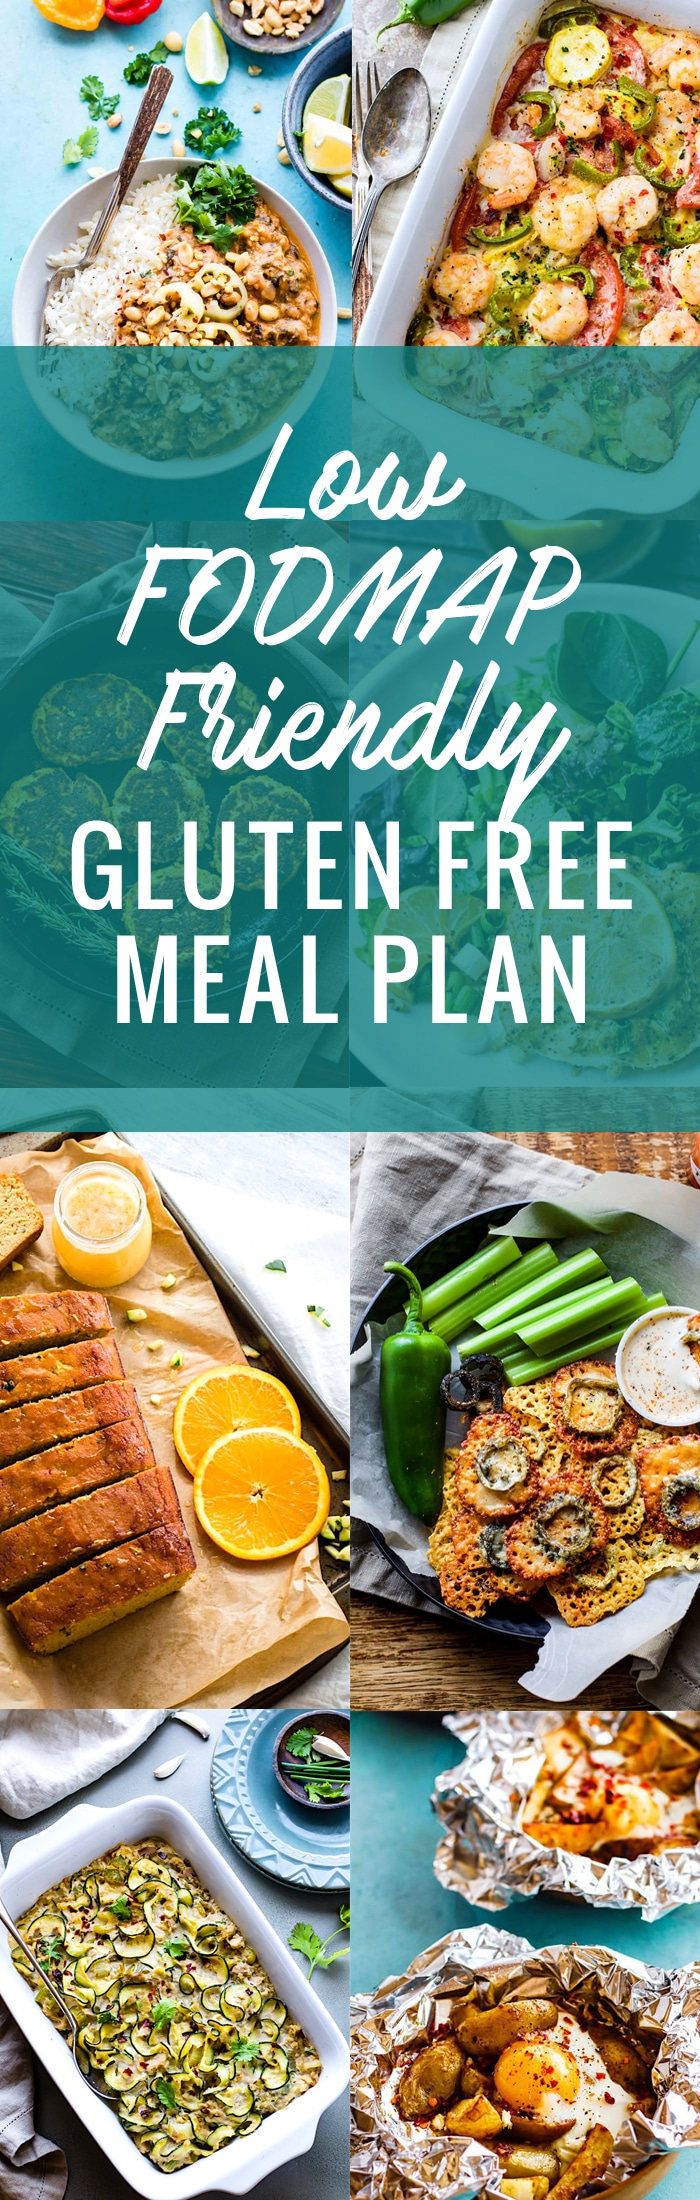 Low fodmap friendly gluten free meal plan recipes and tips this low fodmap friendly gluten free meal plan is a great tool to help you resolve fandeluxe Image collections